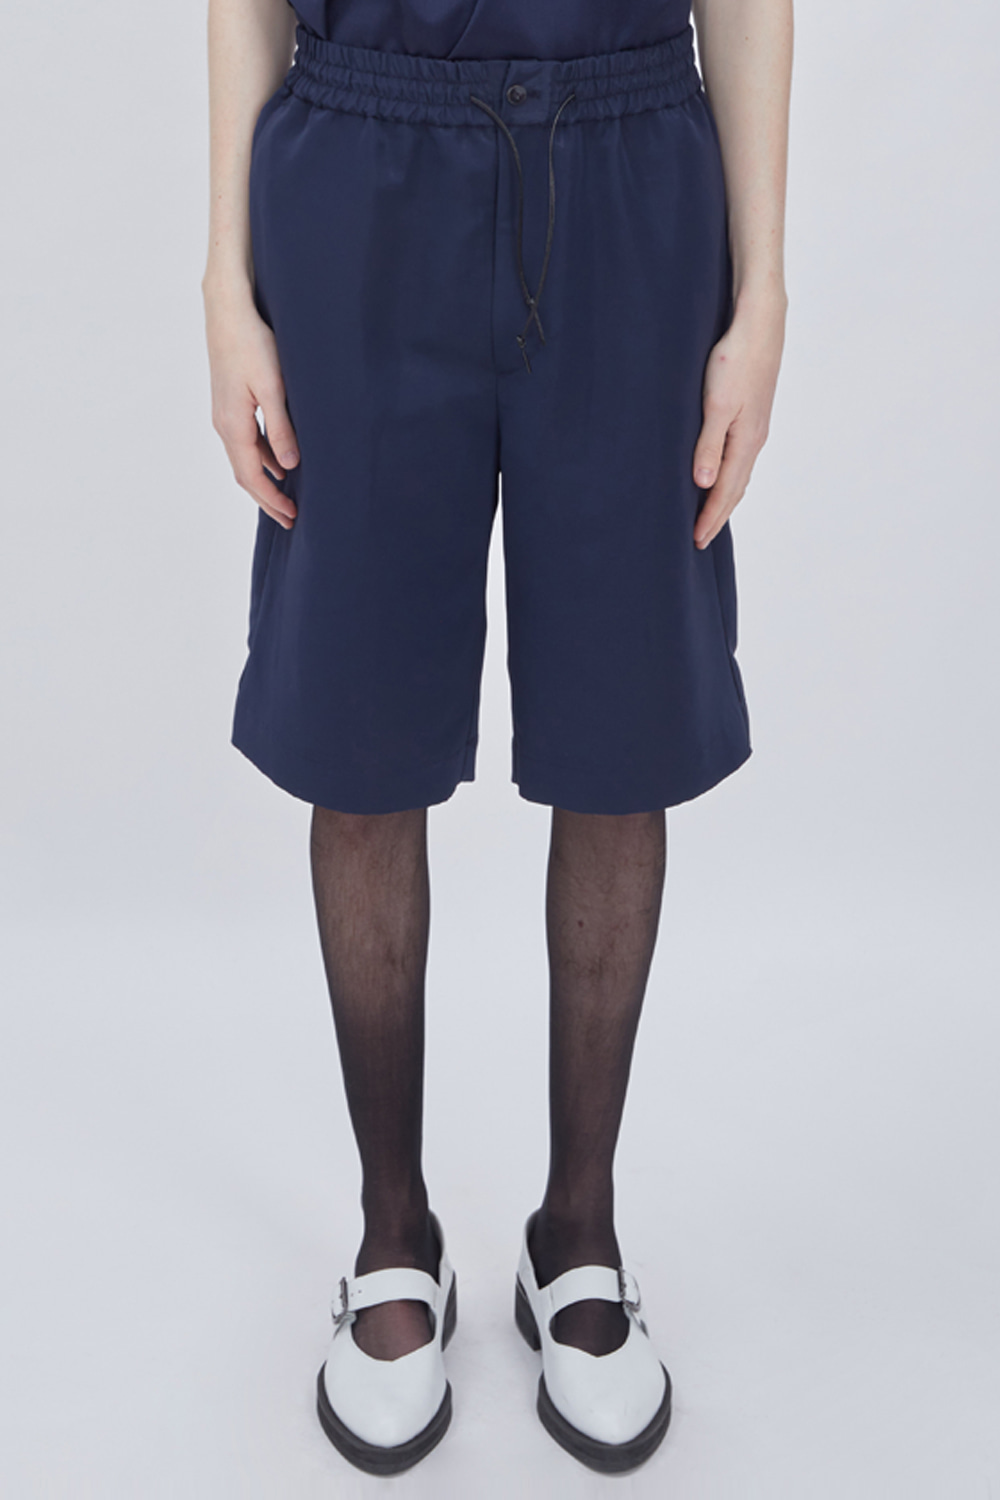 OVERSIZED HALF PANTS (NAVY)